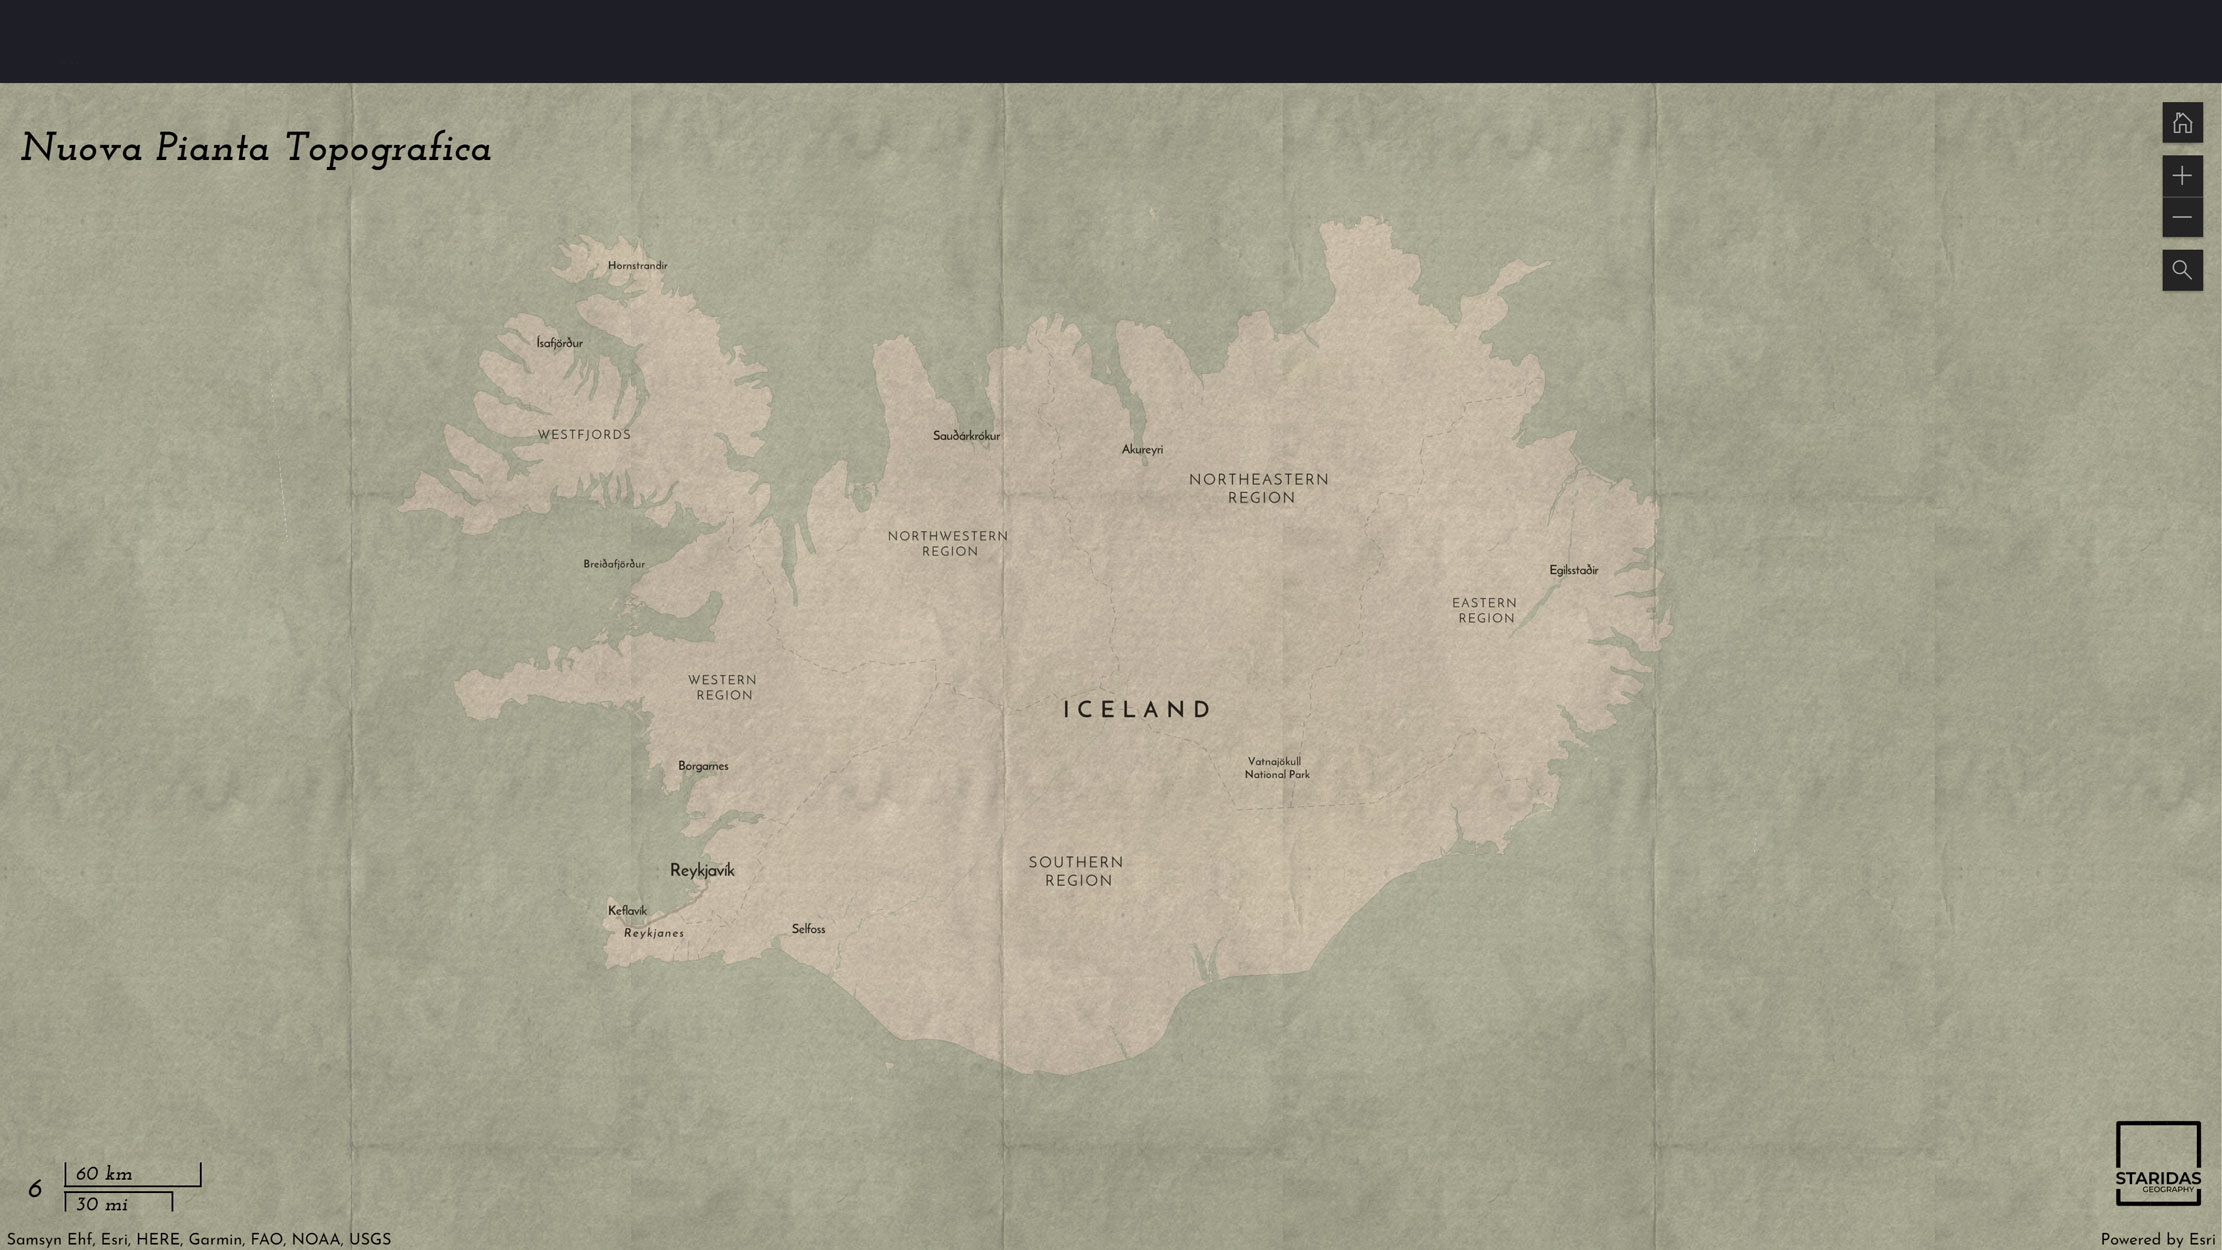 Picture 5: Combining paper texture styles on top of the custom vector basemap (mind-blowing).